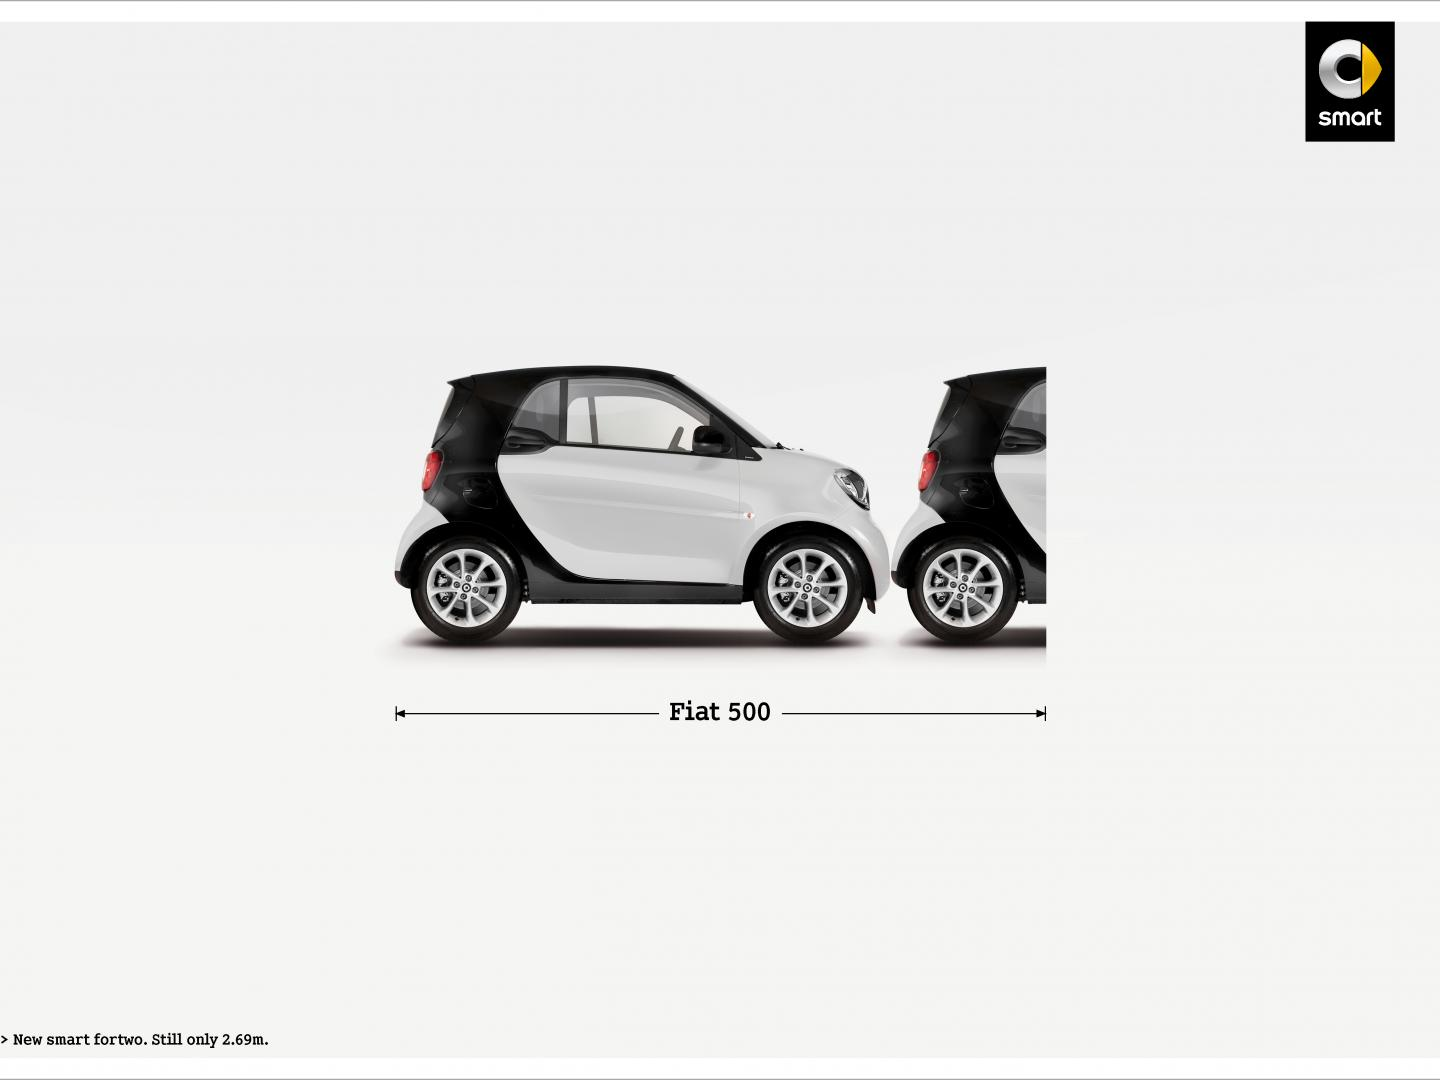 Image for COMPETITORS - Fiat 500